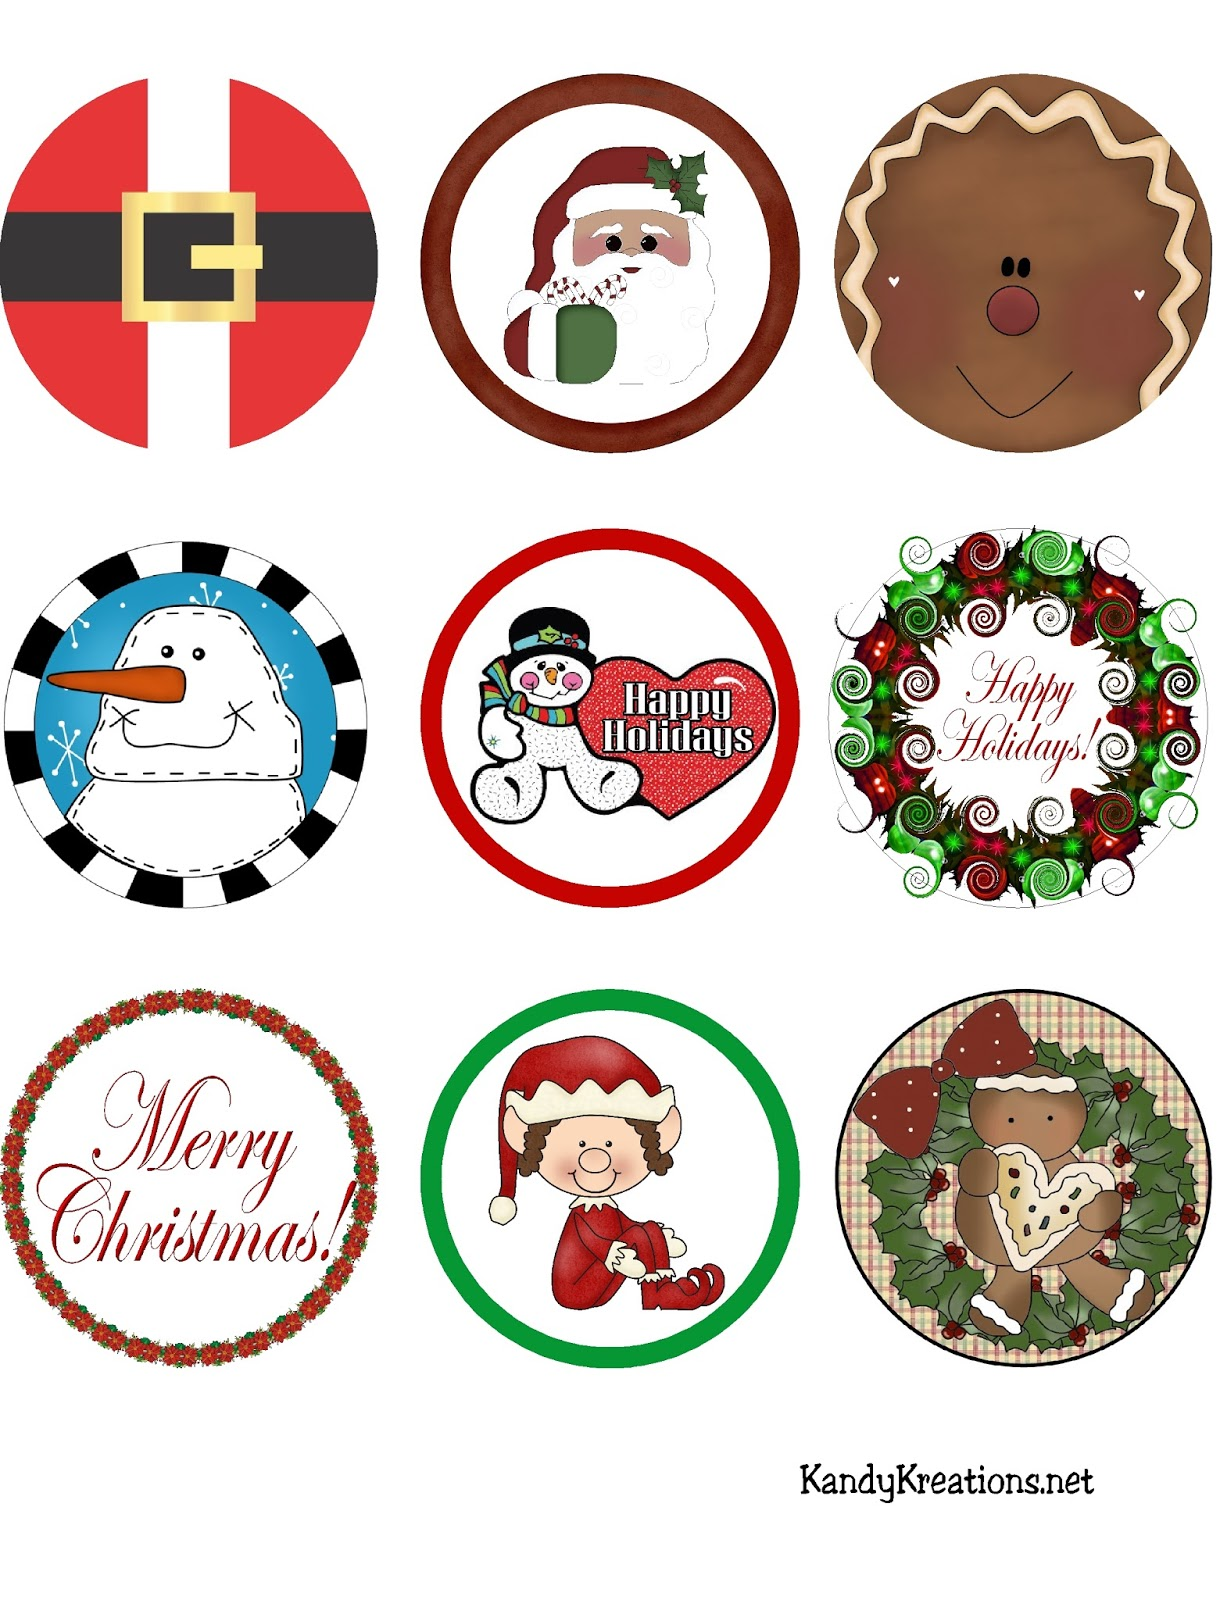 It's just a graphic of Effortless Free Printable Christmas Stickers